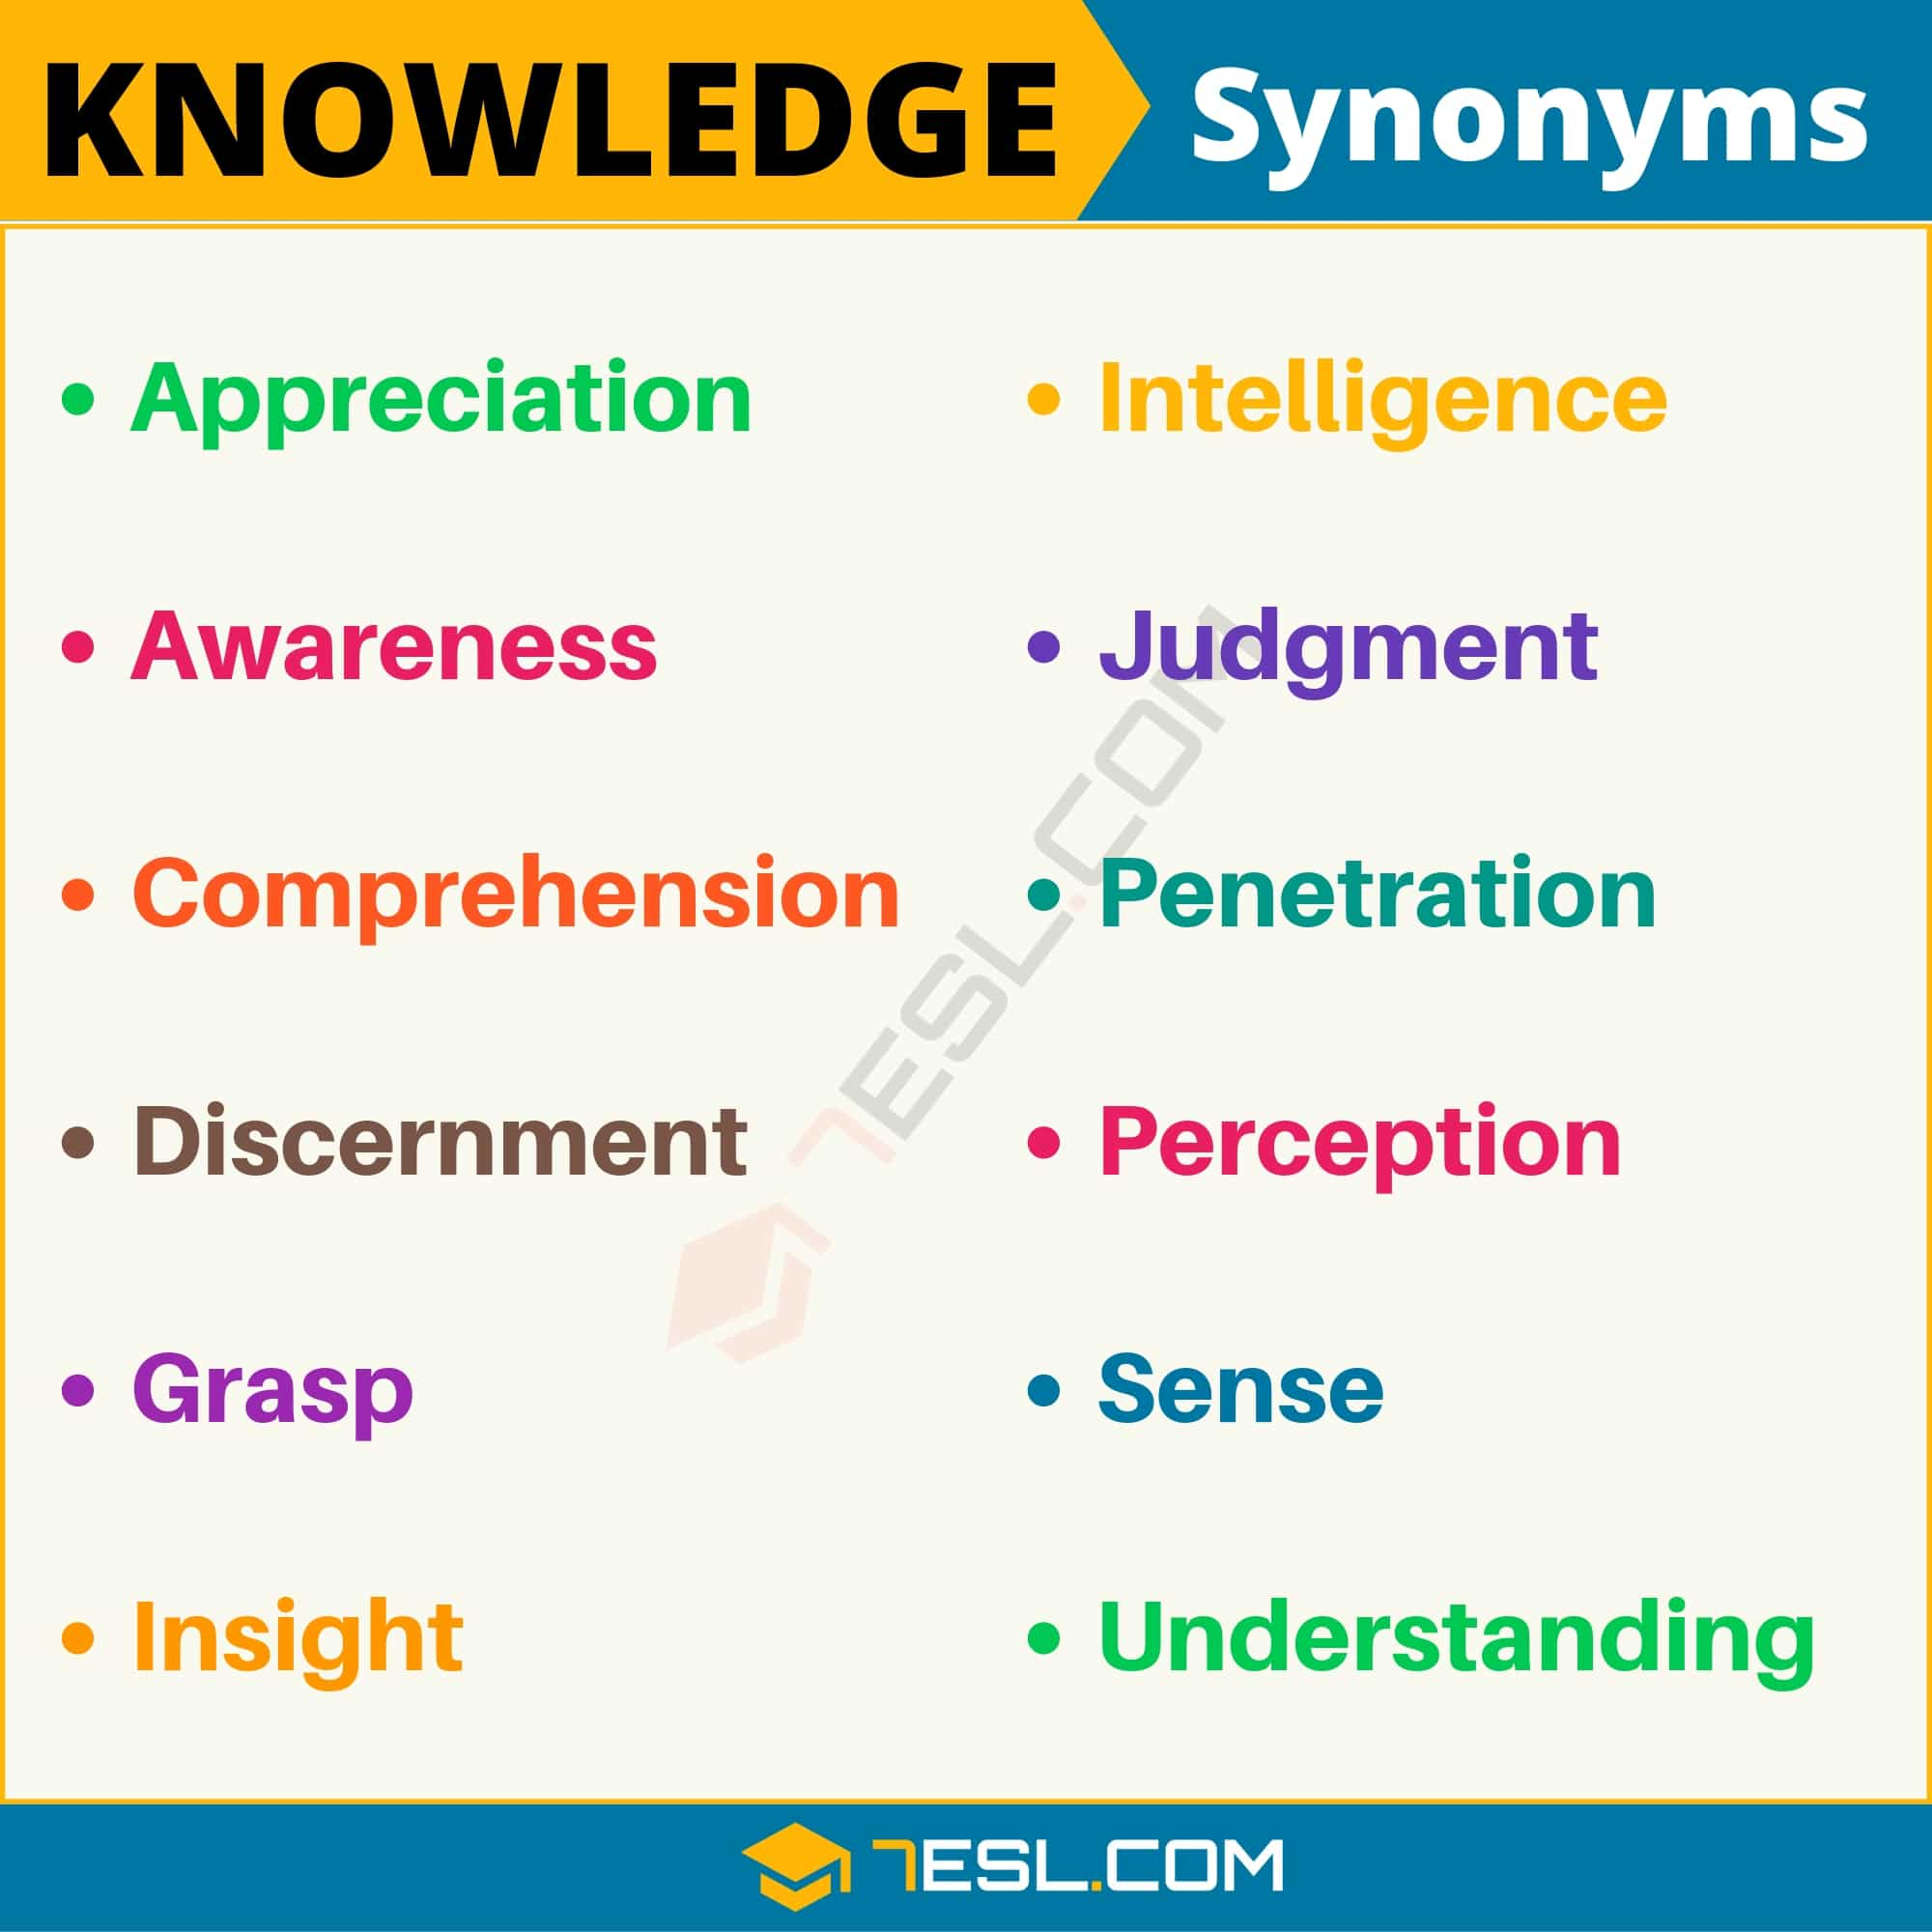 KNOWLEDGE Synonym: 12 Synonyms for Knowledge with Examples